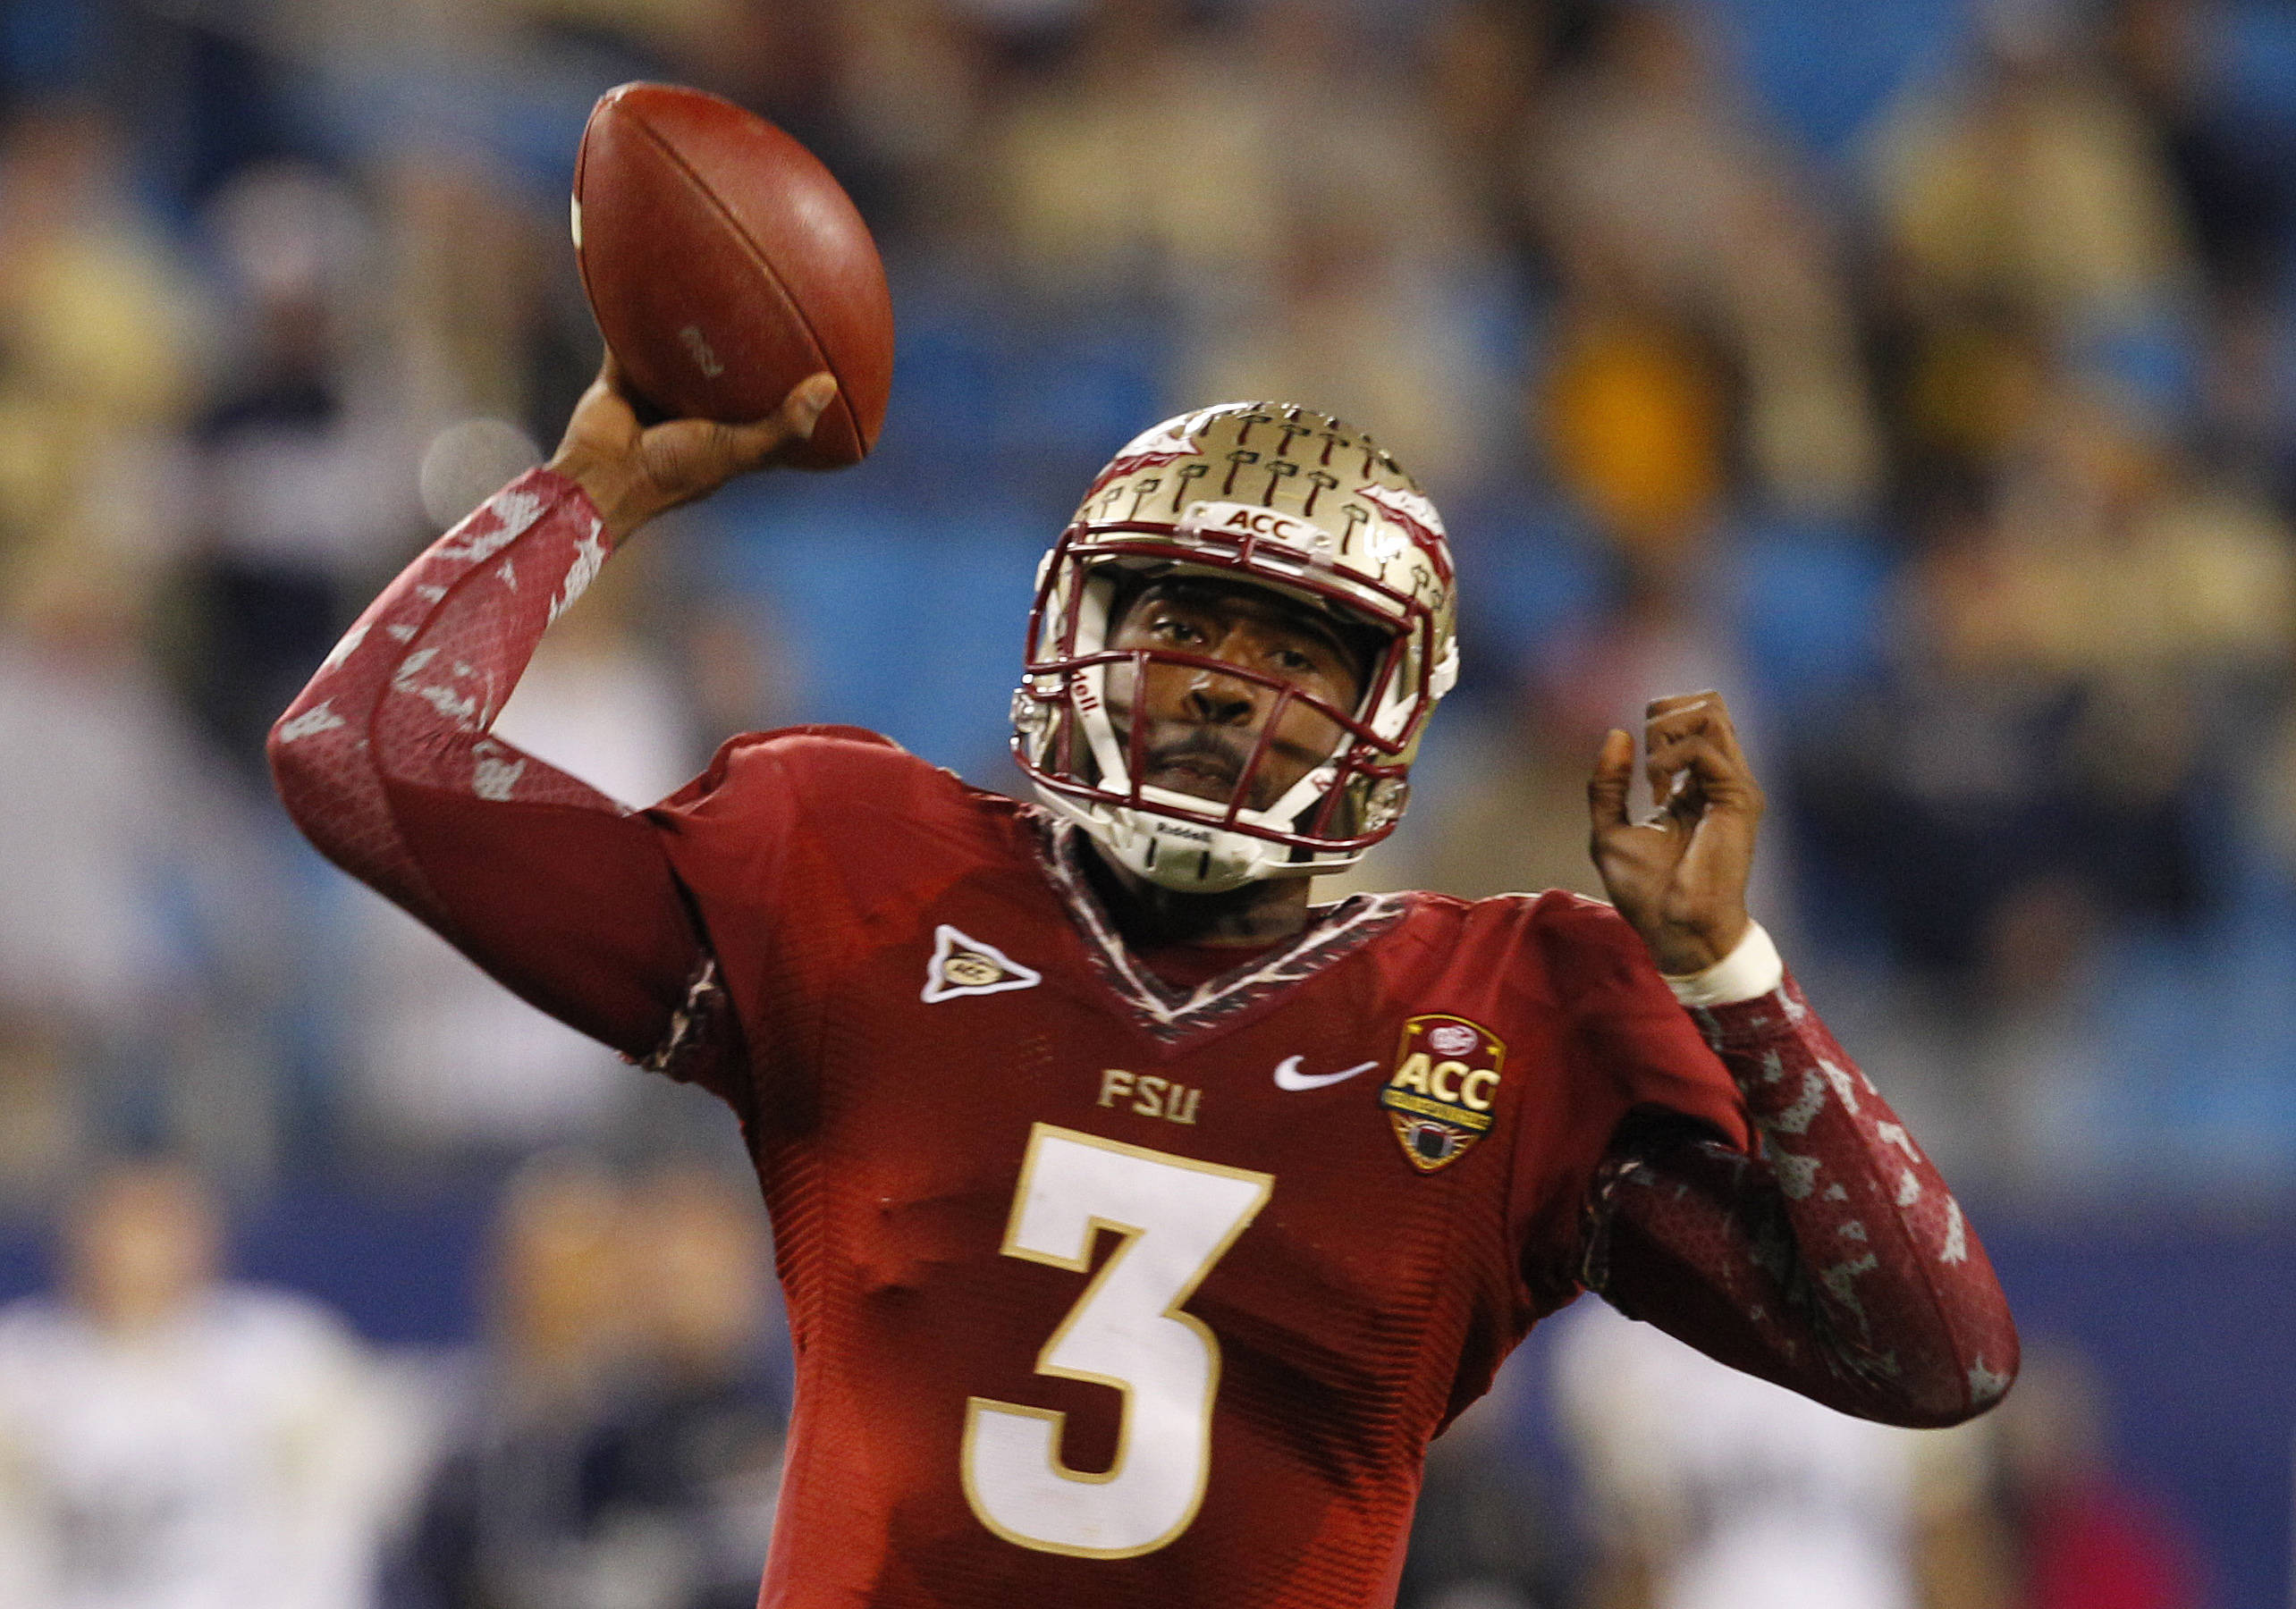 Florida State's EJ Manuel (3) throws a pass against Georgia Tech during the first half. (AP Photo/Chuck Burton)